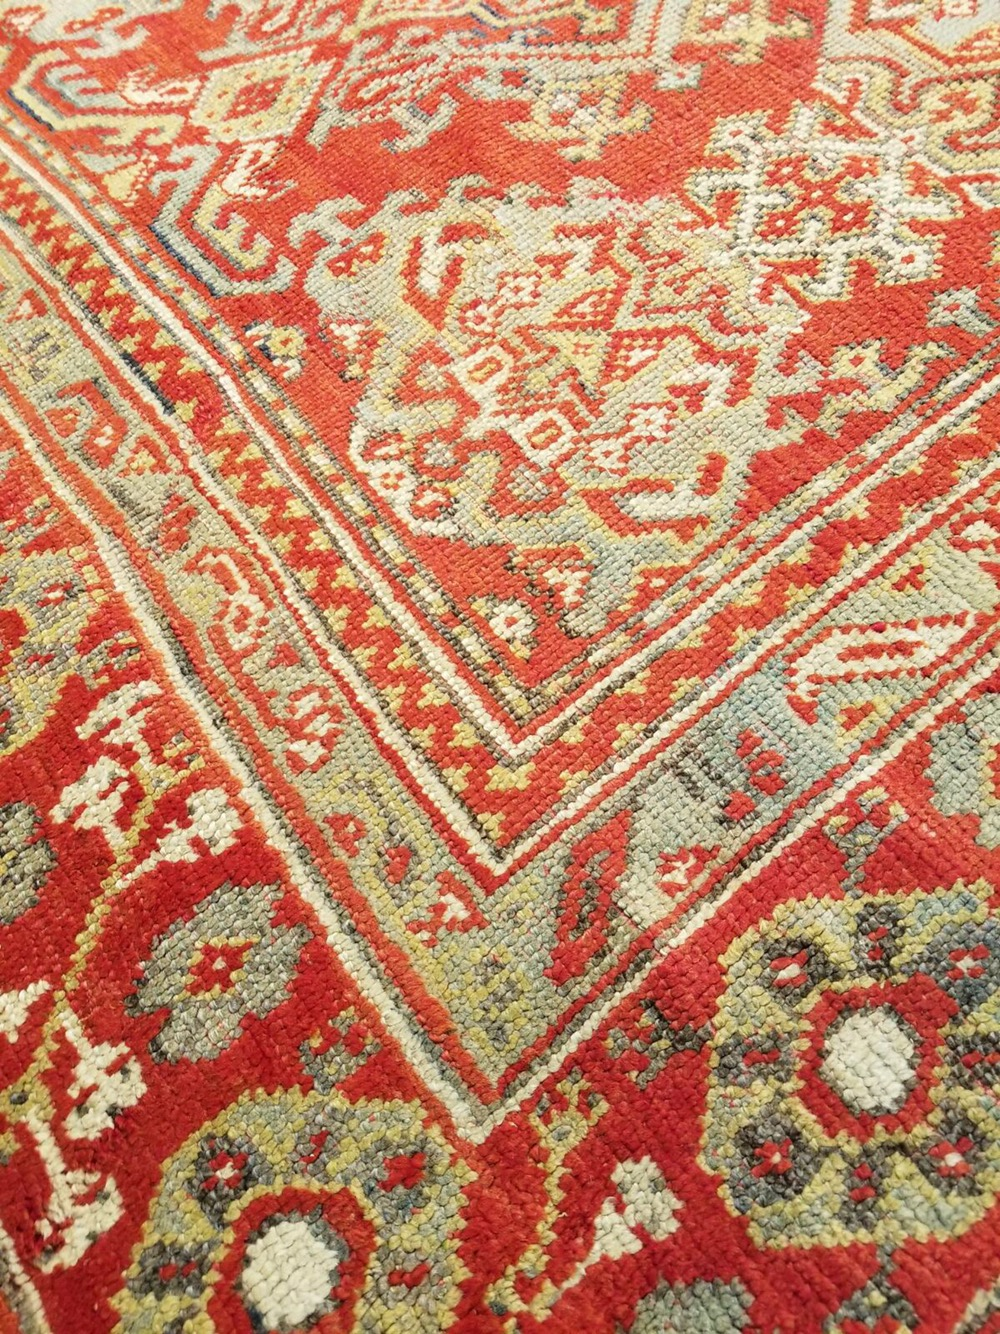 Vintage Persian Rugs Unique Oushak Rug At Americasmart